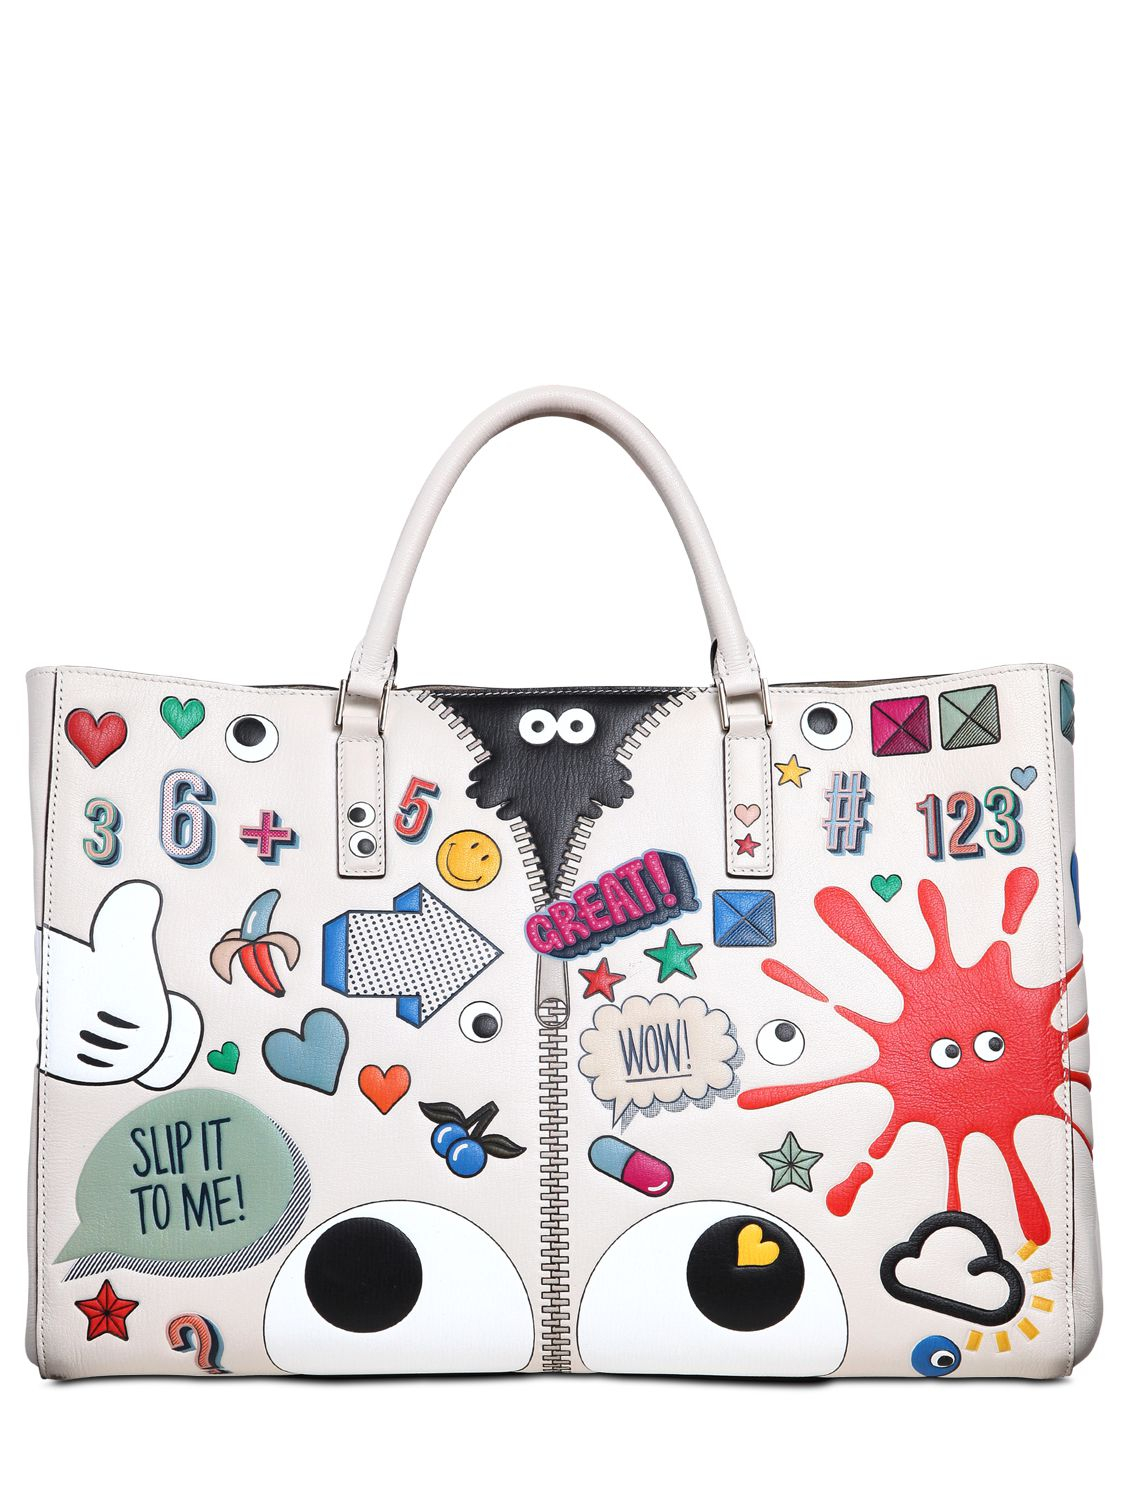 My_Stylery_Trends_Anya_Hindmarch_Bags (1)